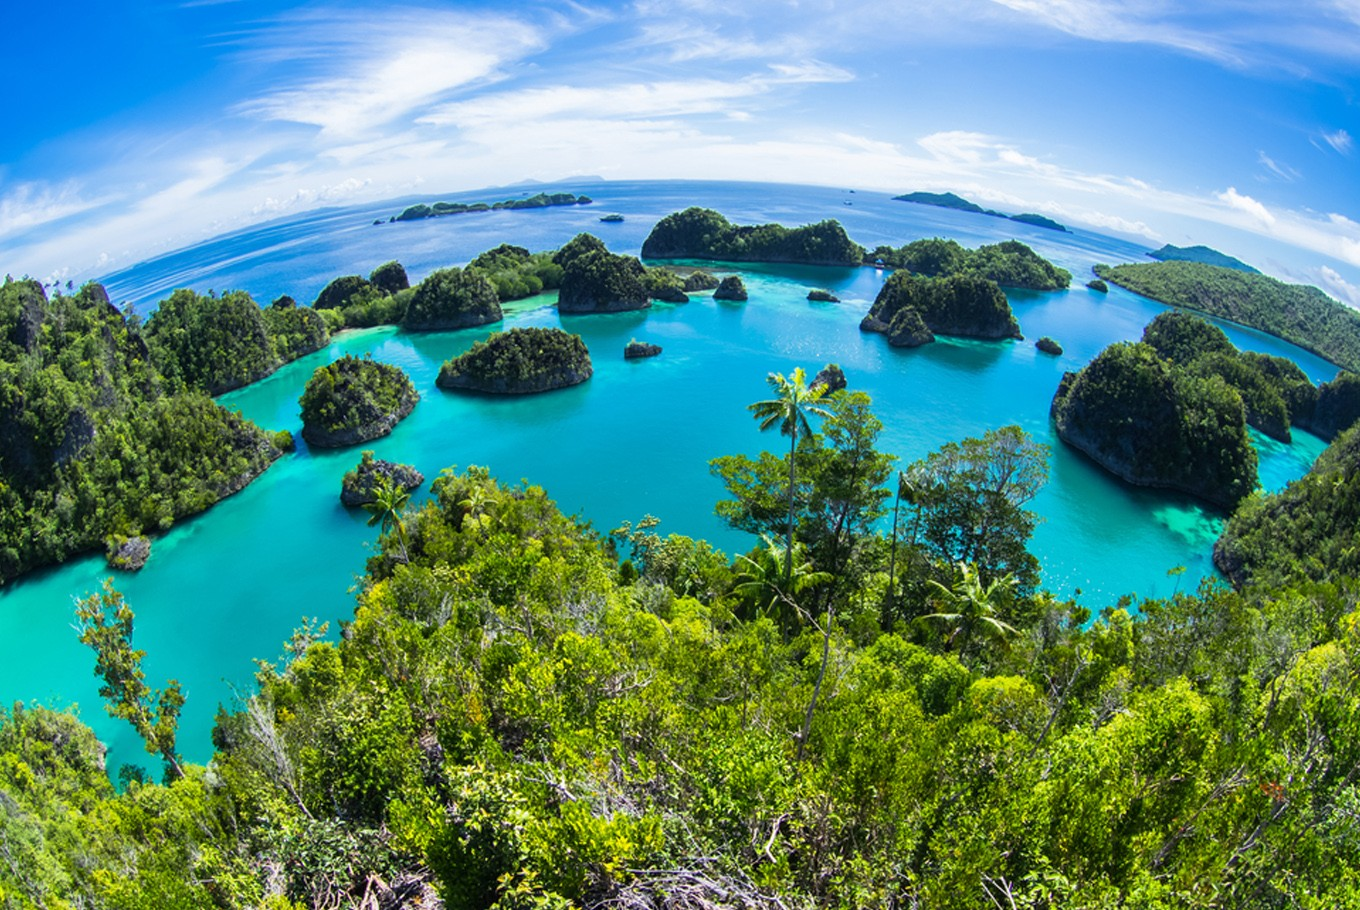 Raja Ampat easier to reach thanks to Garuda's new Jakarta-Sorong service